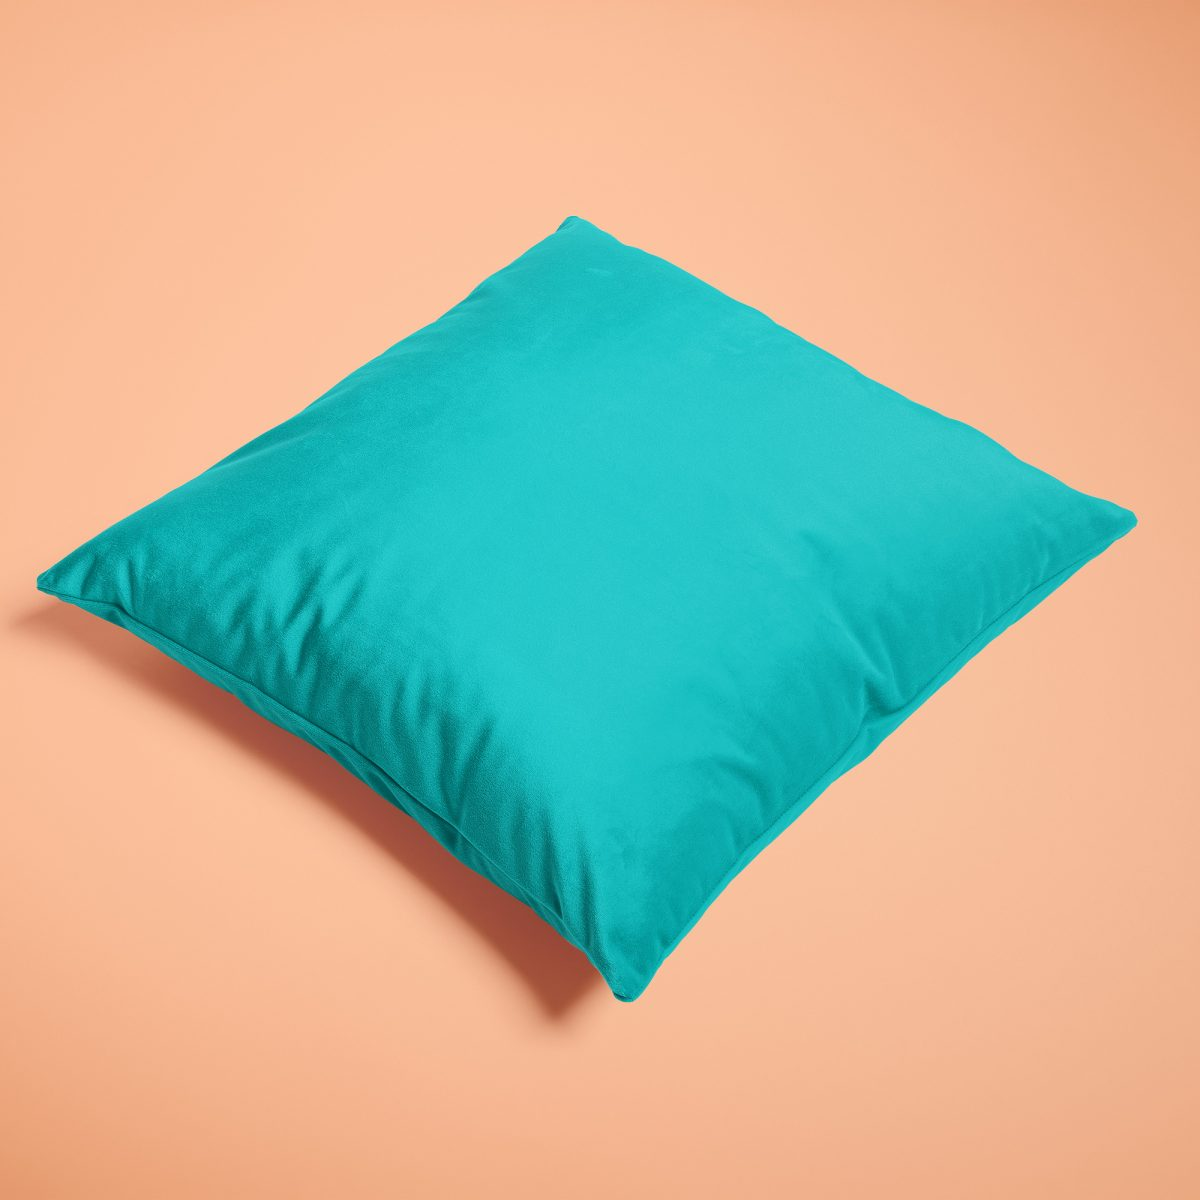 turquoise-covers-of-the-rainbow-2